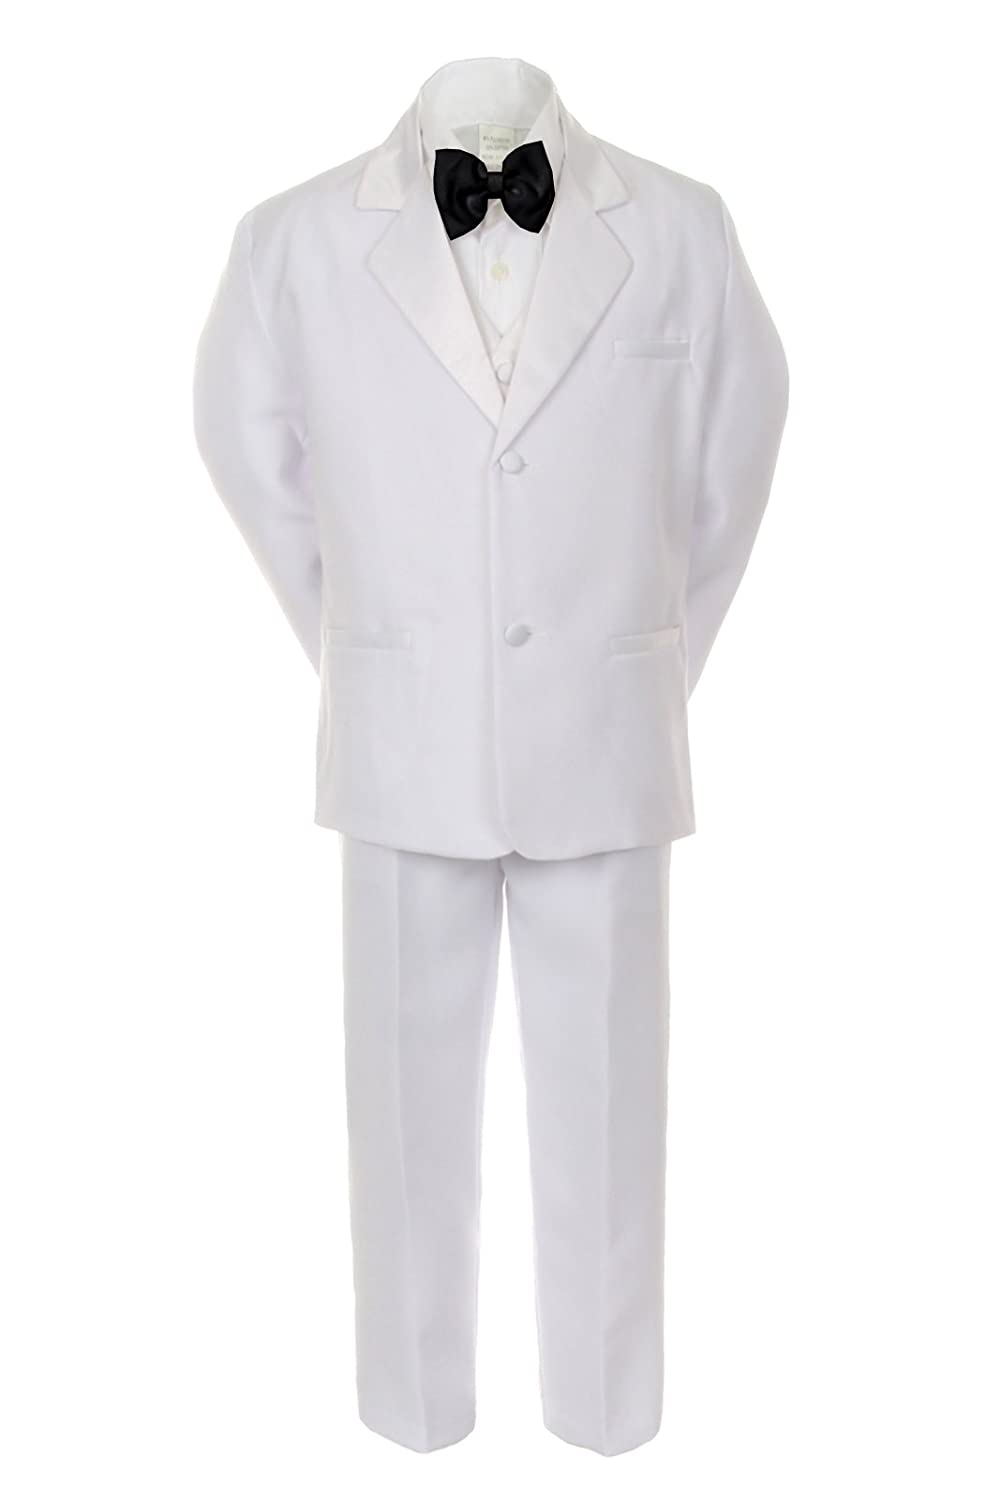 4T Formal Boy White Suit Notch Lapel Satin Tuxedo Kid Baby Free Black Bow Tie